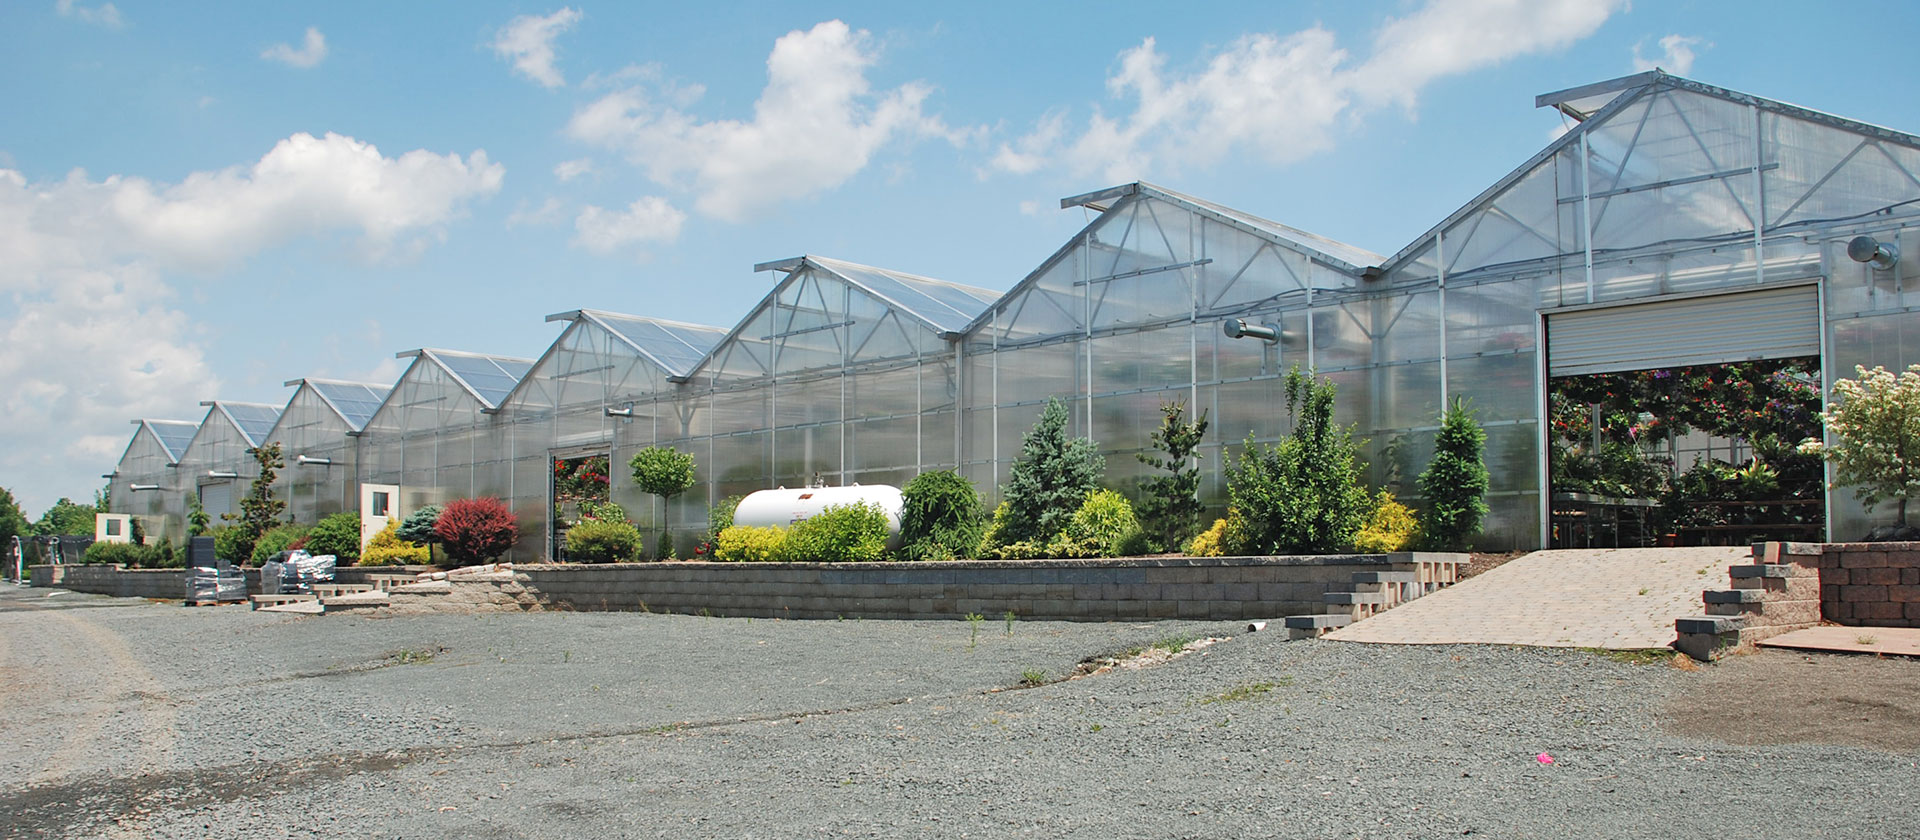 Matterhorn greenhouses by Rimol